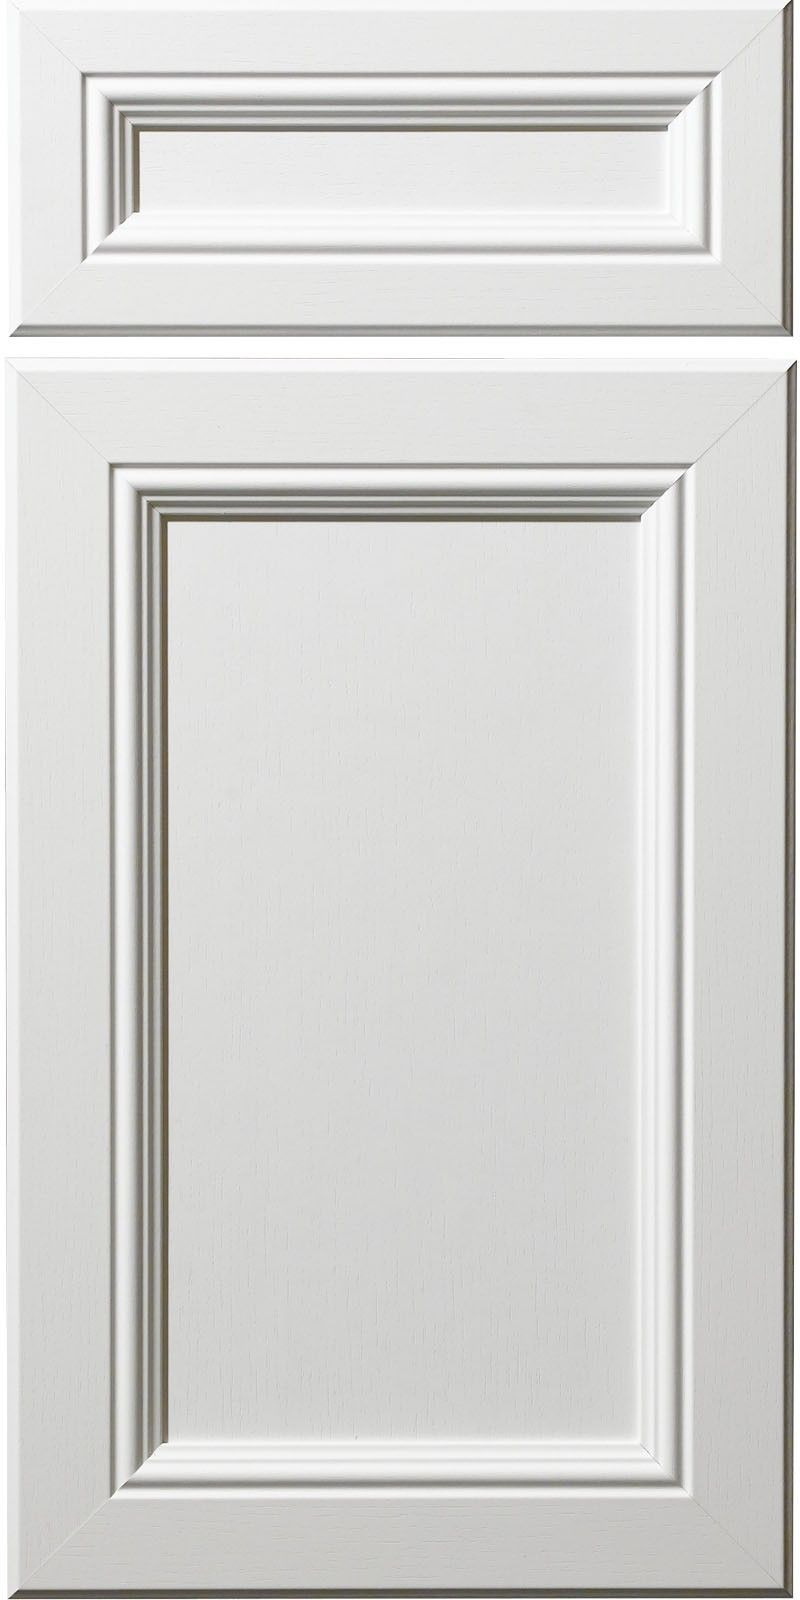 Replacement Cabinet Doors and Drawer Fronts Luxury Recessed Panel Construction